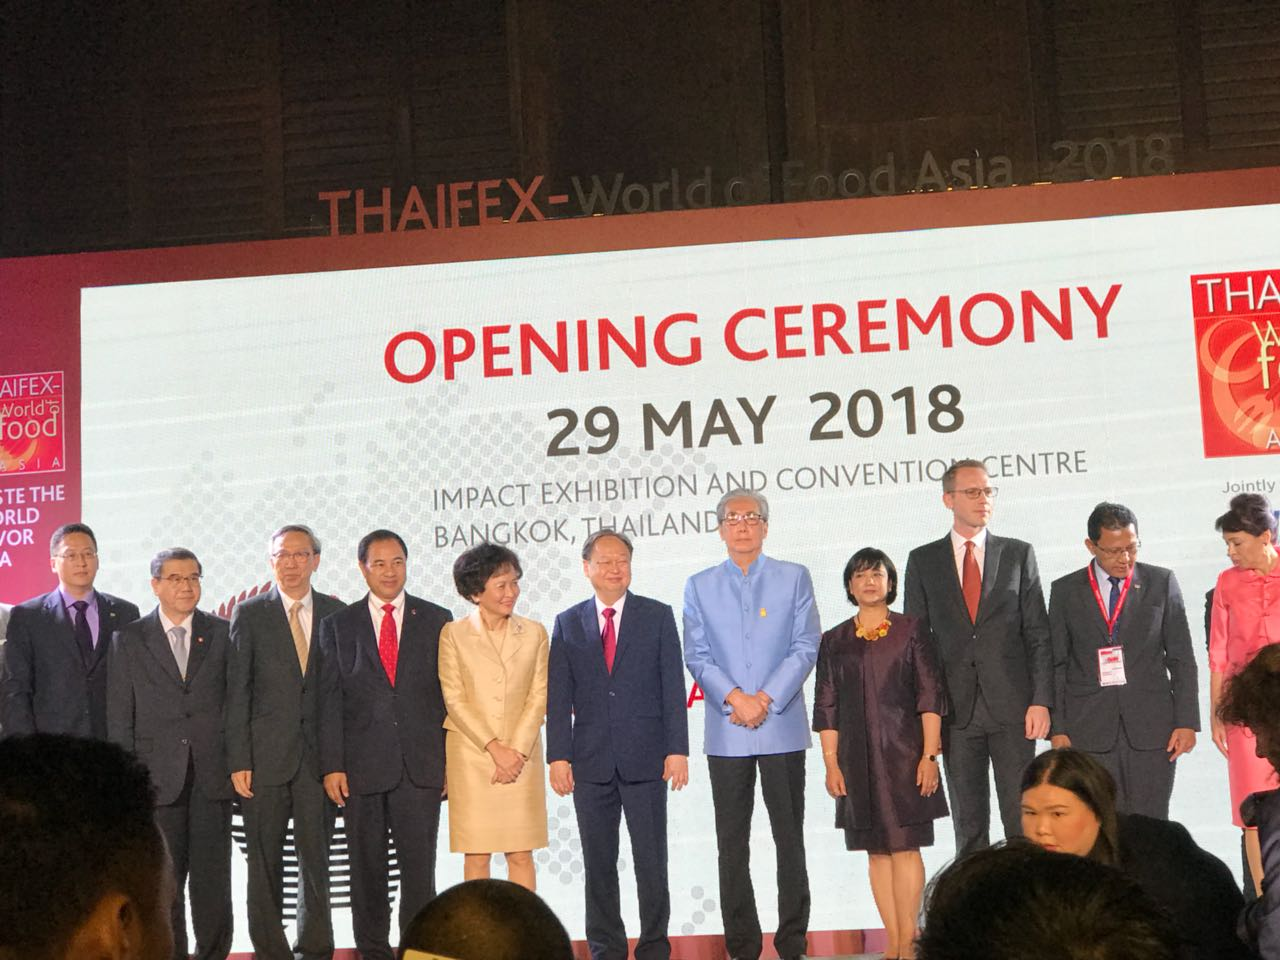 Mr. Somkid Jatusripitak (Deputy Prime Minister of the Kingdom of Thailand) opened Thaifex 2018- International Trade Exhibition for Food & Beverages, Food Technology and Retail & Franchise in Asia